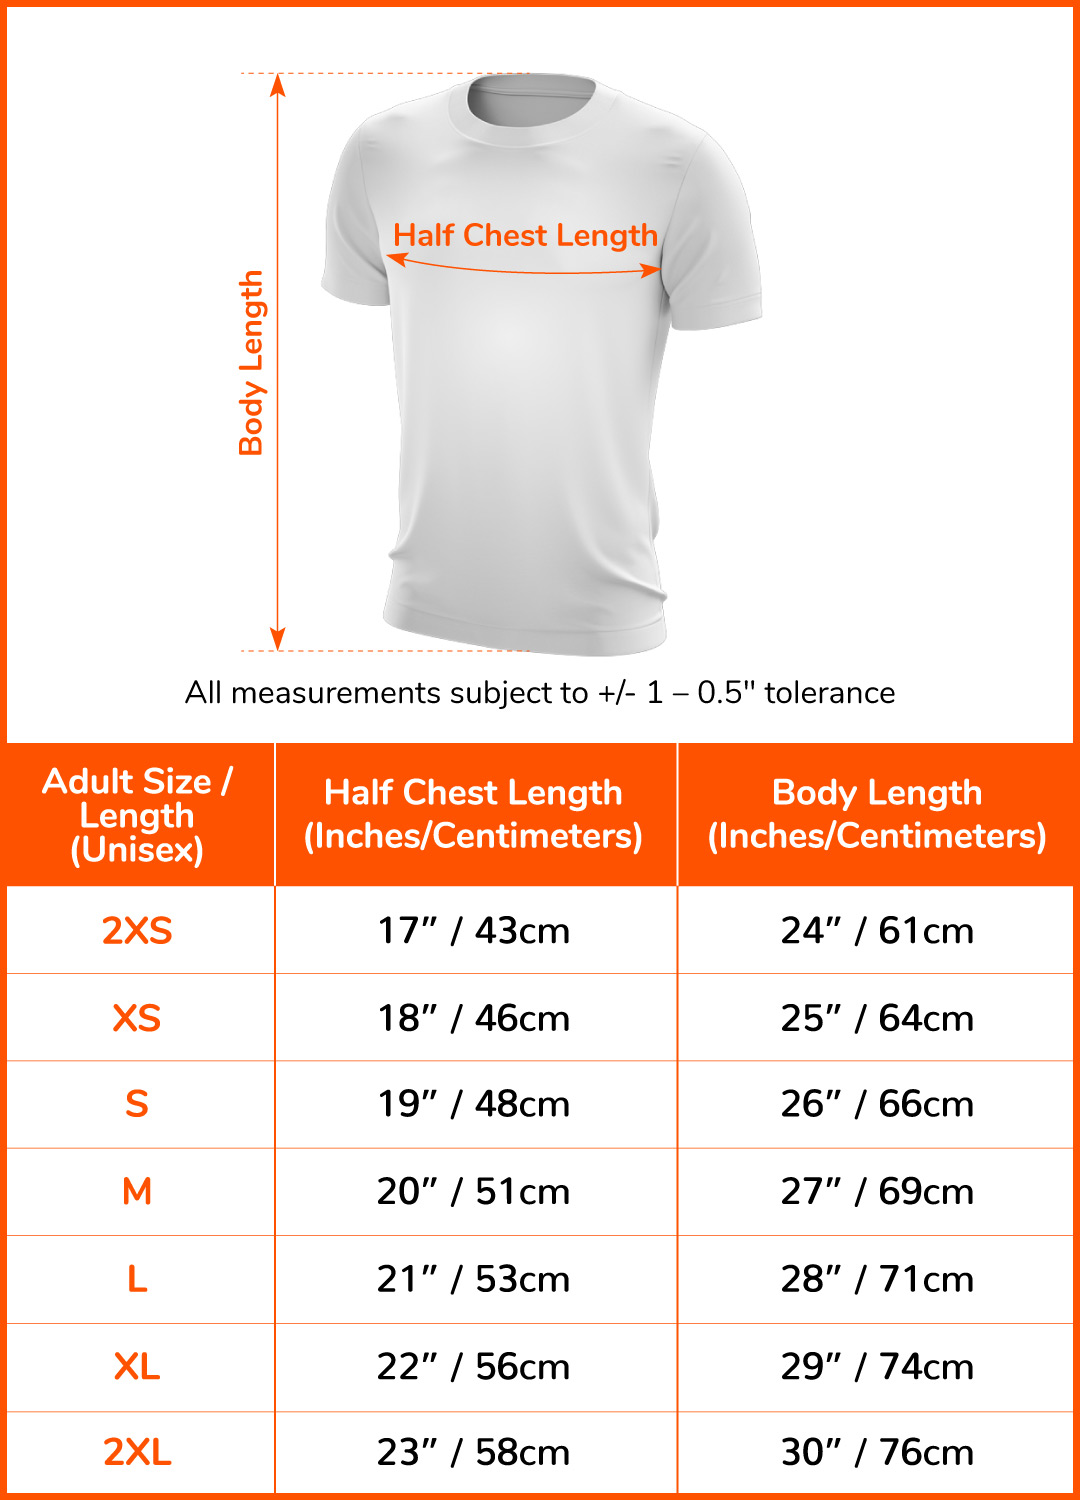 Finisher T-Shirt - 5.5km#size-chart